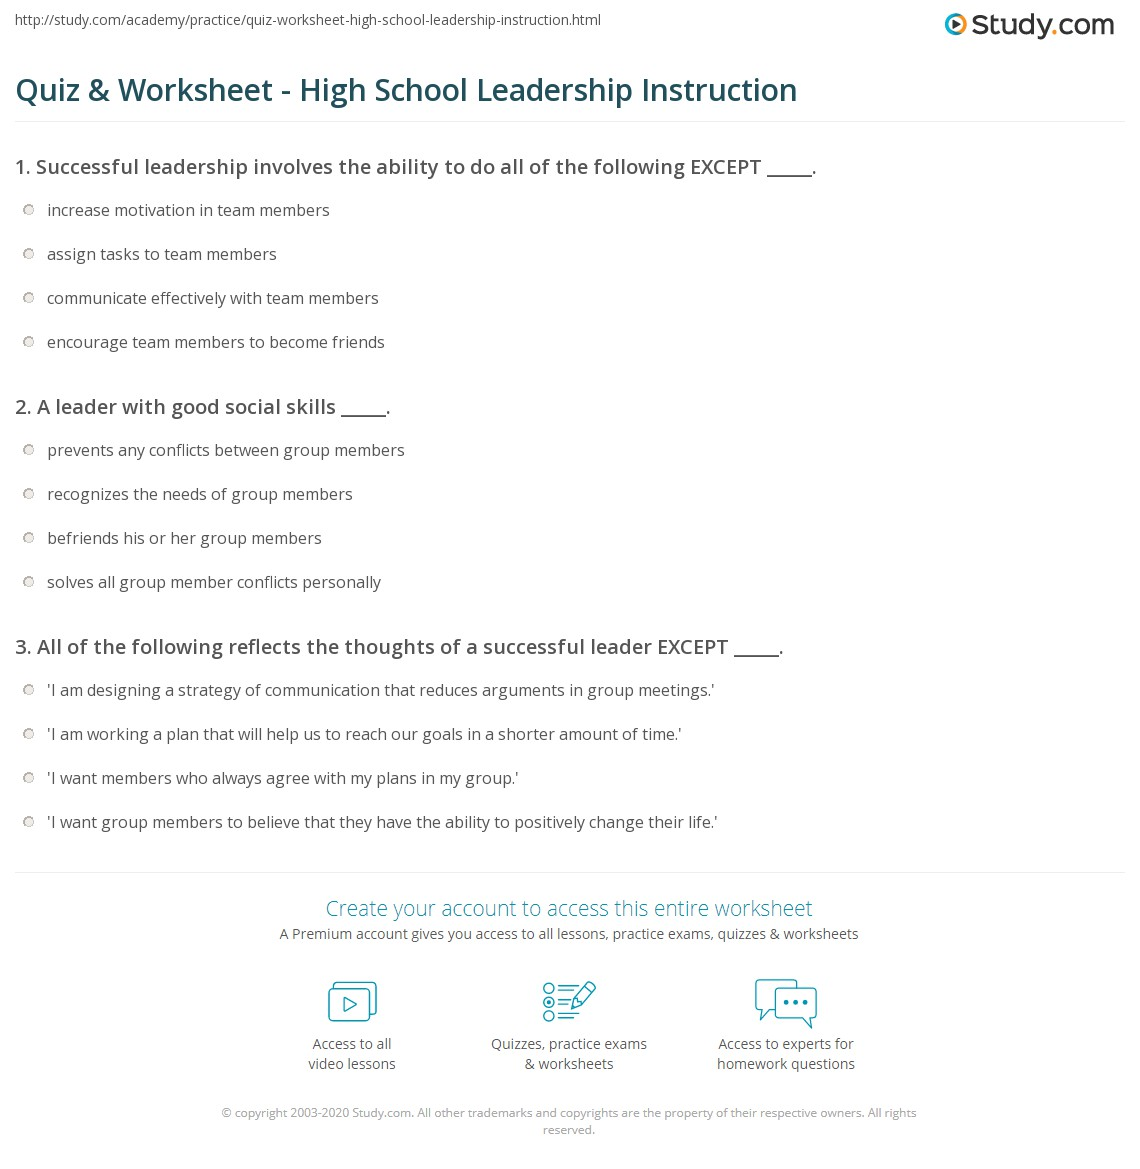 quiz worksheet high school leadership instruction com print teaching leadership to high school students worksheet